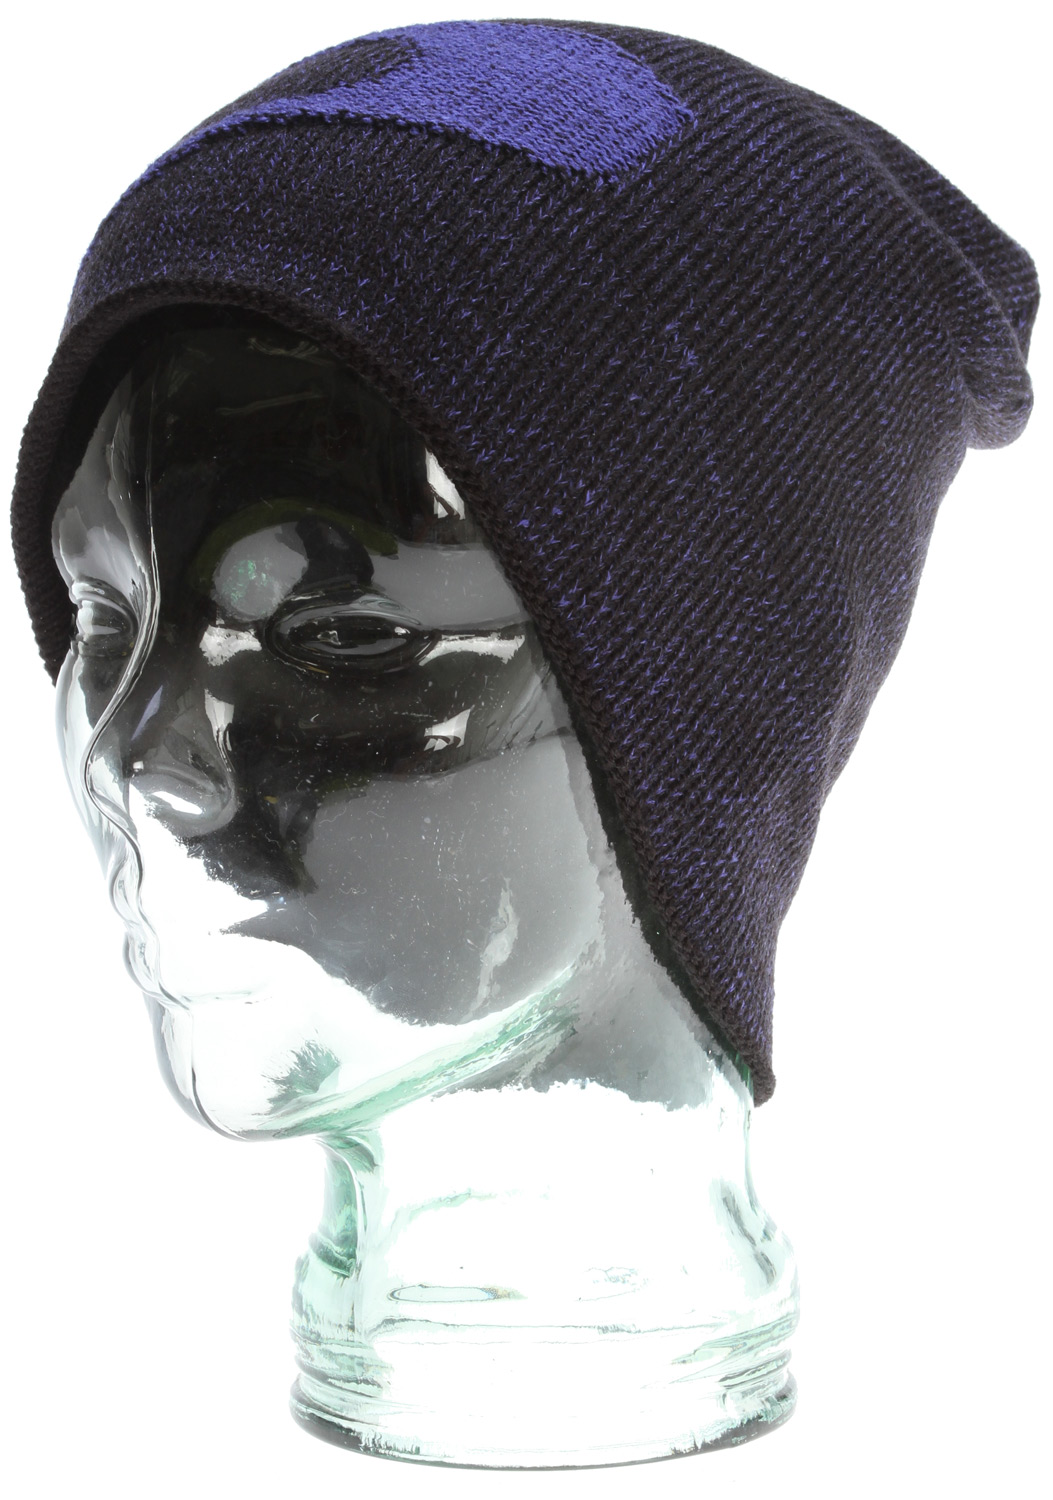 Key Features of the Oakley Cascade Slouch Beanie: Reverse Jacquard Acrylic Slouch Fit - $23.95